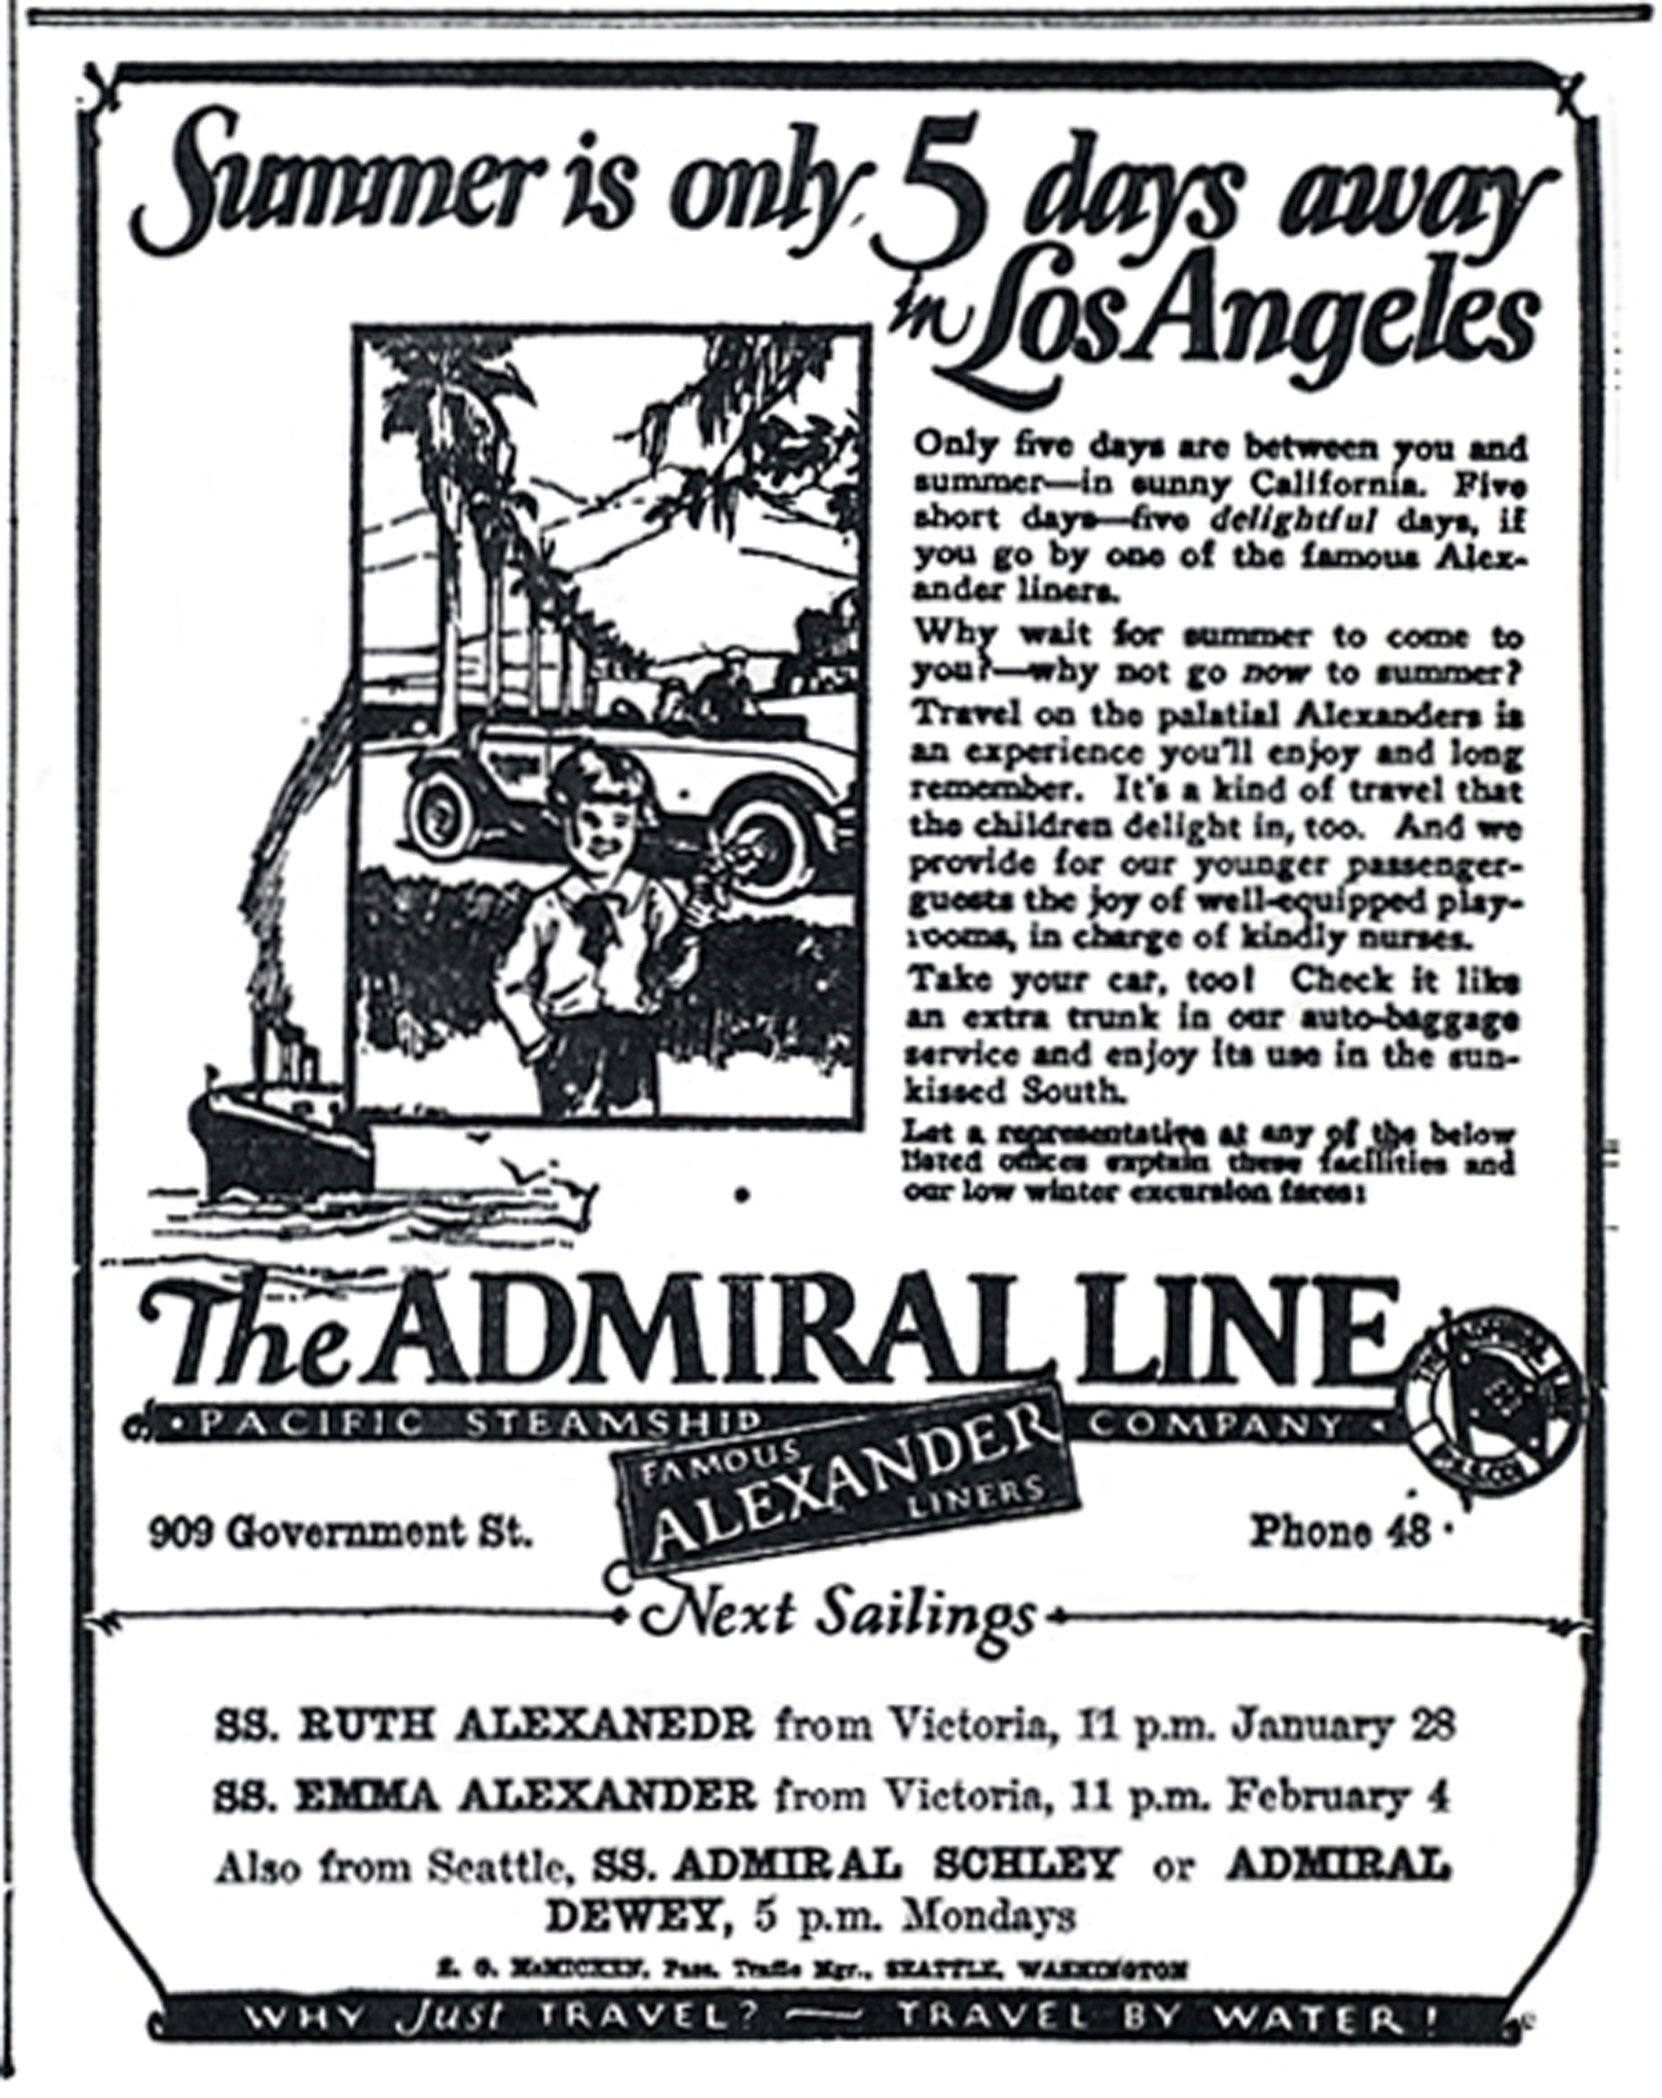 "Advertisement for the Pacific Steamship Company's Admiral Line, 1926. Notice that it took 5 days to travel by Admiral Line ships between Victoria and Los Angeles. Railroads took far less time to travel the same route, a fact which ultimately contributed to the Admiral Line going out of business in 1936. Notice also the reference to taking a car to California on the ship by ""check[ing] it like an extra trunk in [the] auto-baggage service…."" (Author's collection)"